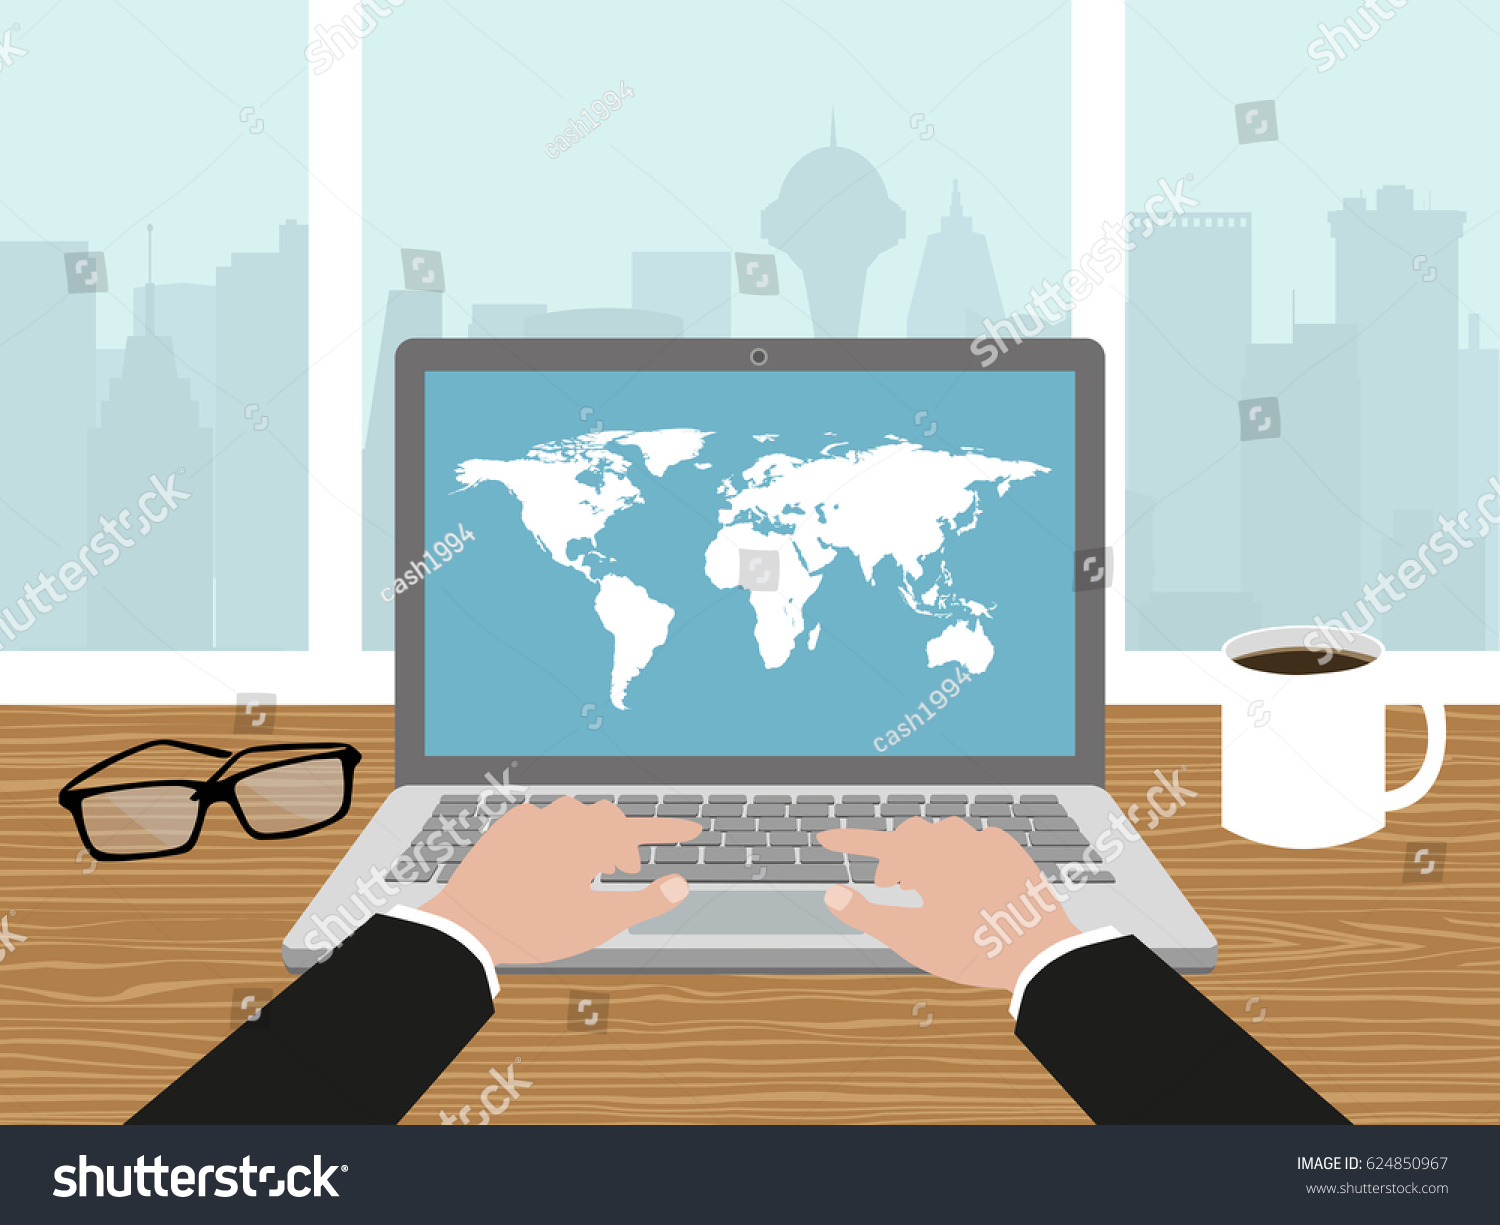 Hands on laptop keyboard pushing keys vectores en stock 624850967 hands on laptop keyboard pushing keys coffeeworld map and glasses on the desk gumiabroncs Choice Image